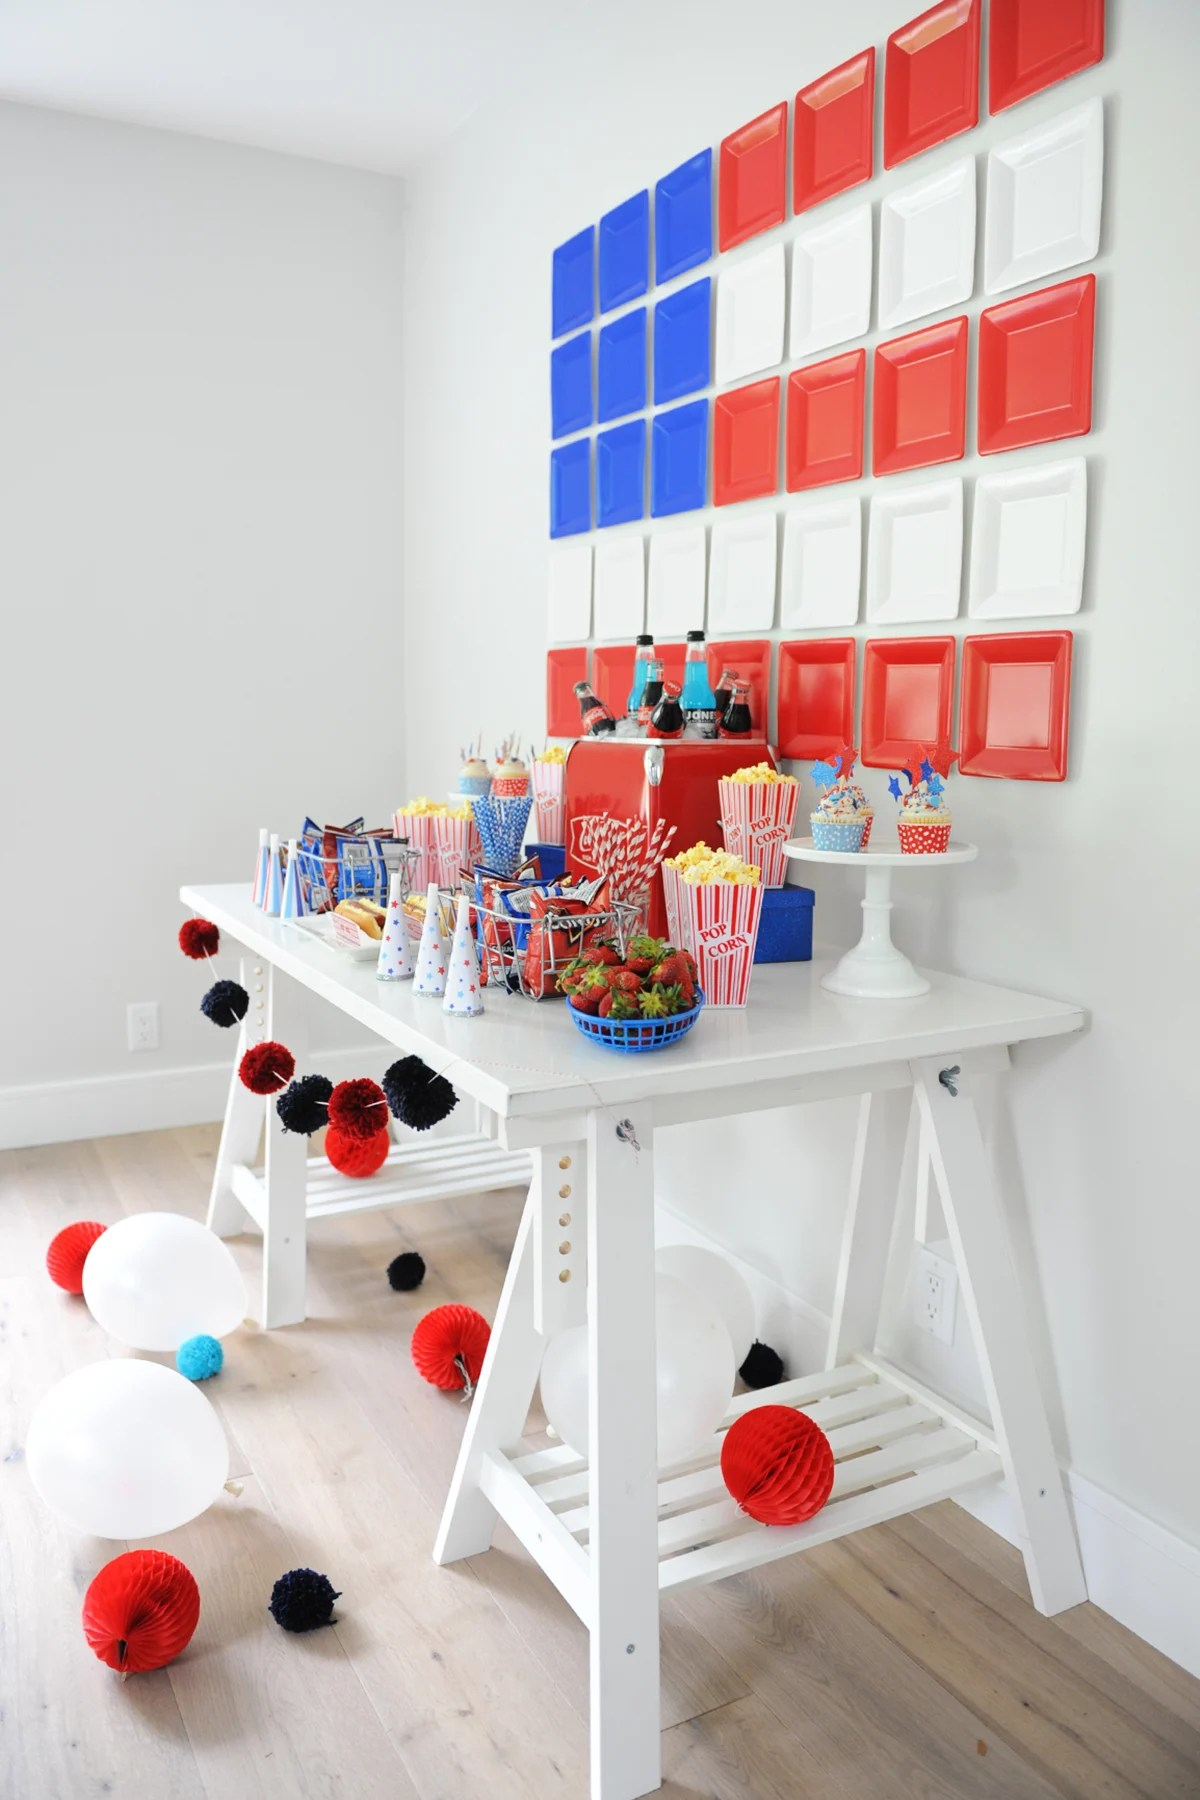 patriotic table decorations to make